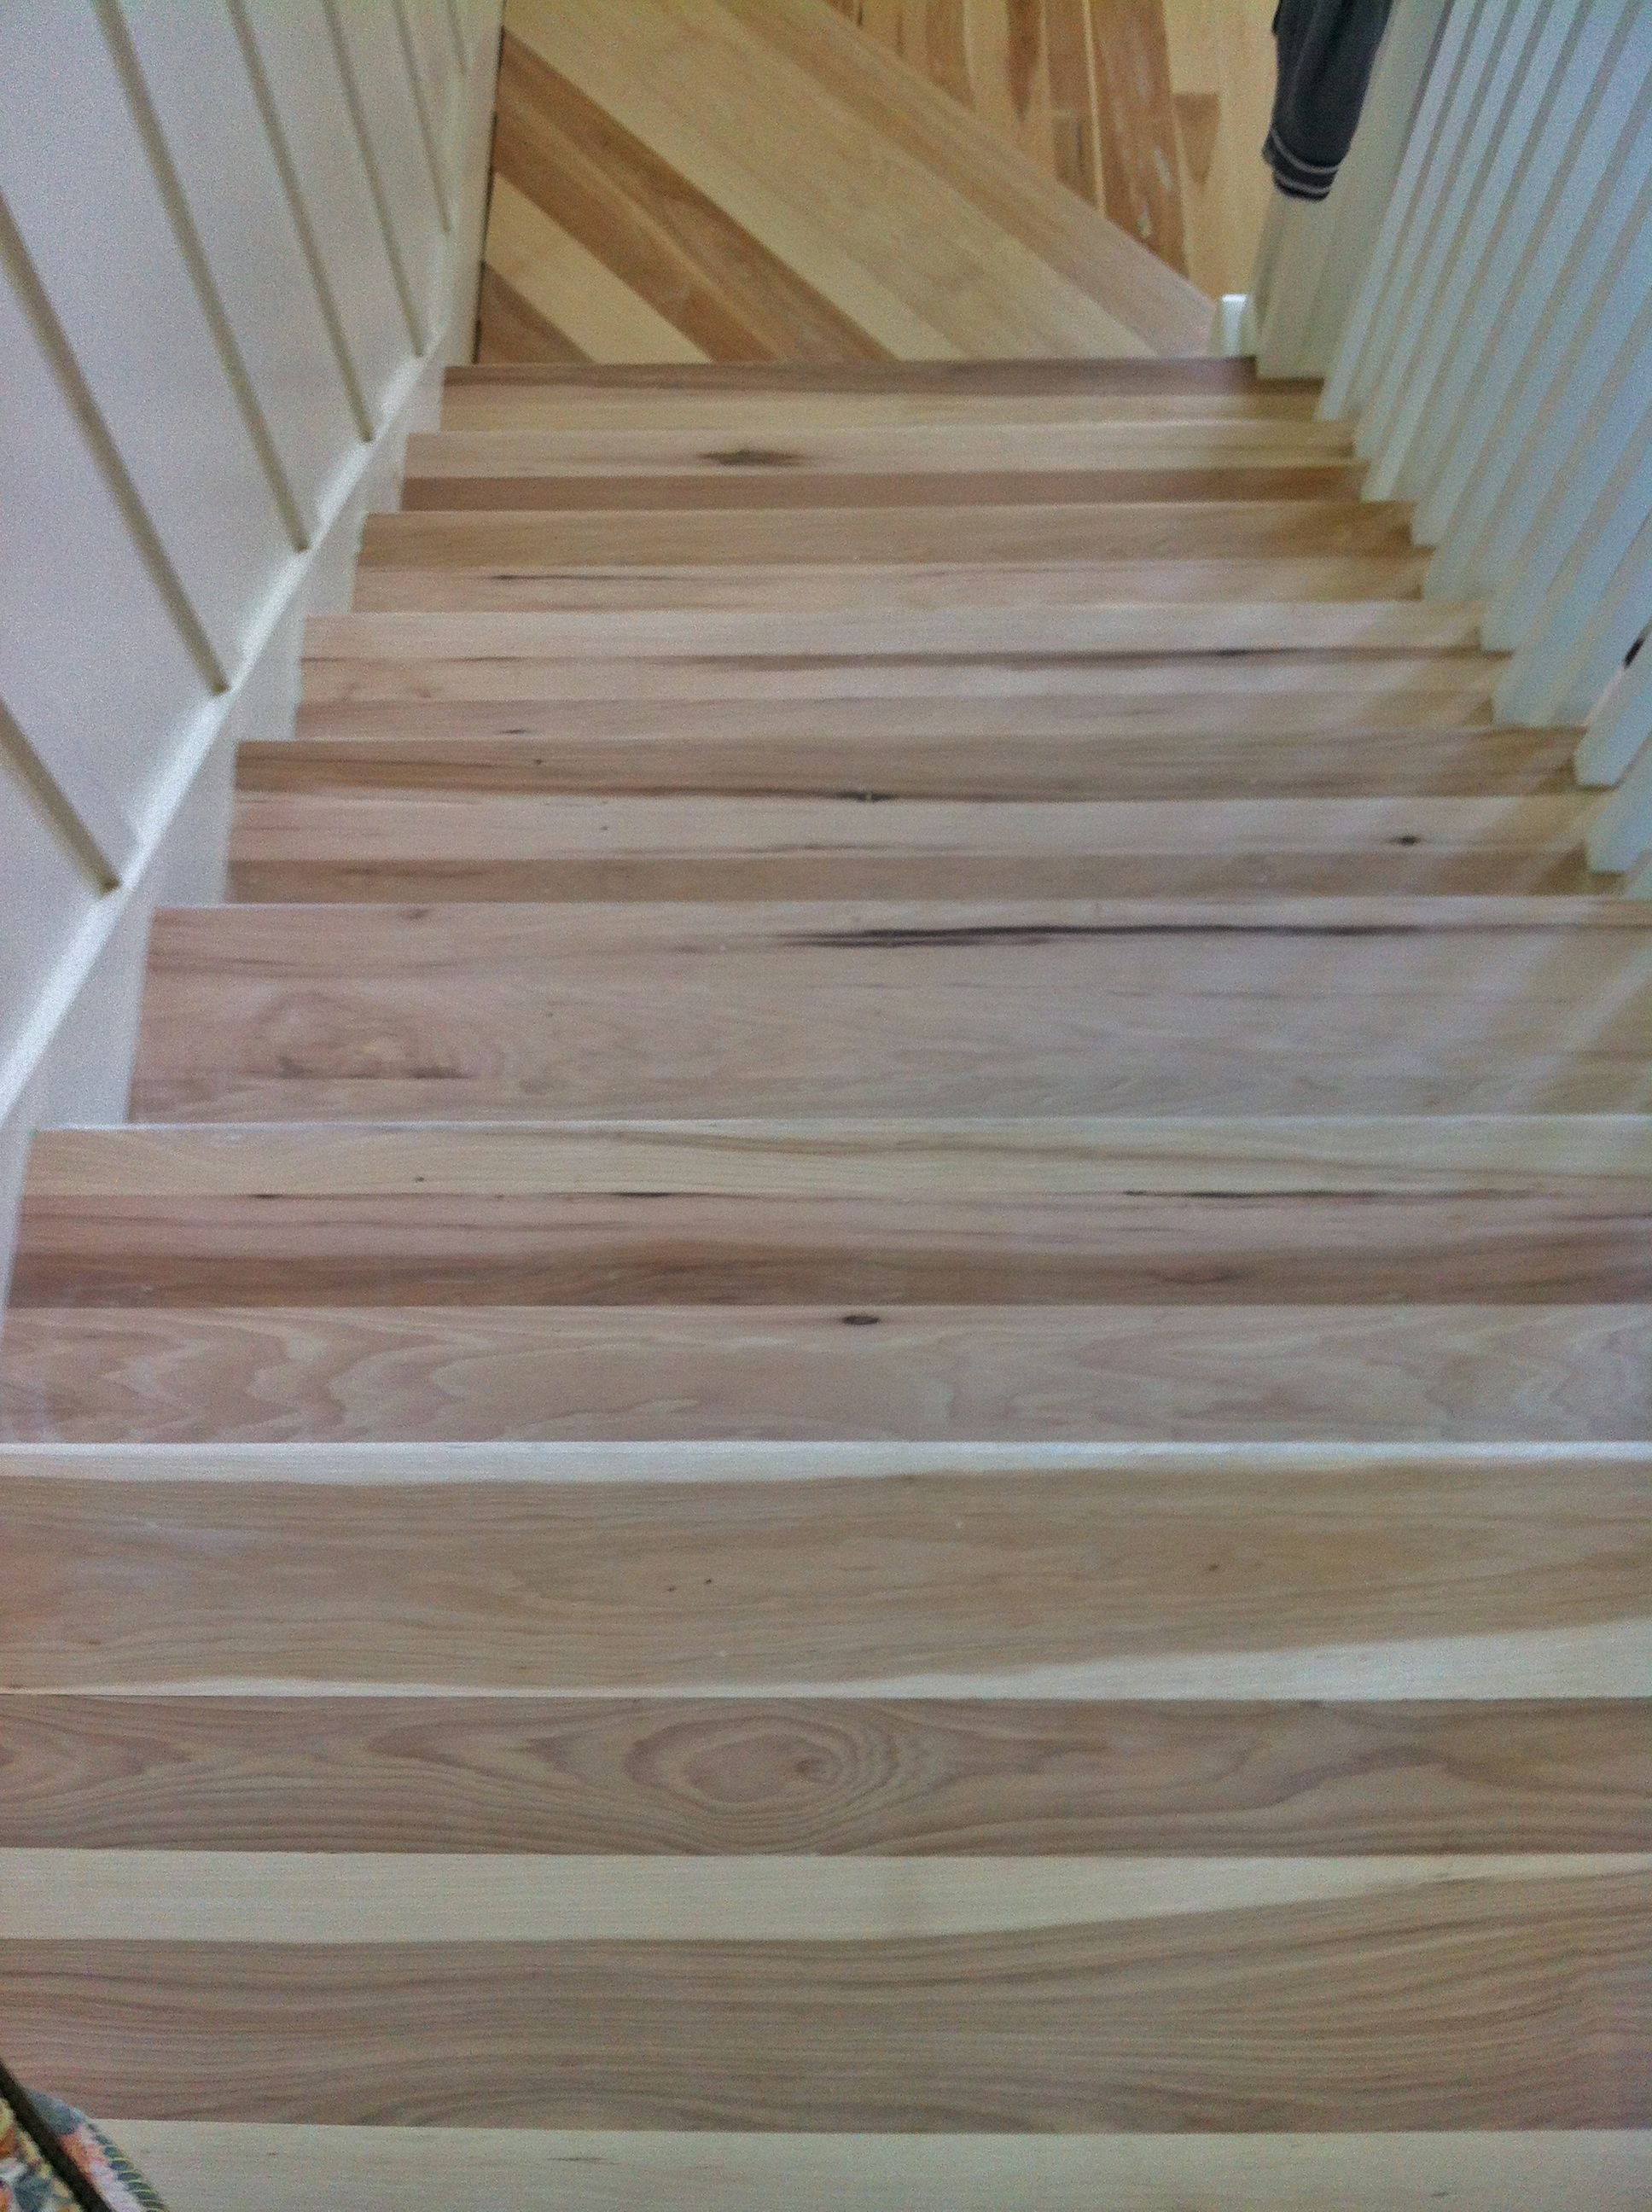 Hickory Stair Treads Before They Were Stained Dark Walnut Dark Walnut  Stain, Stair Treads,